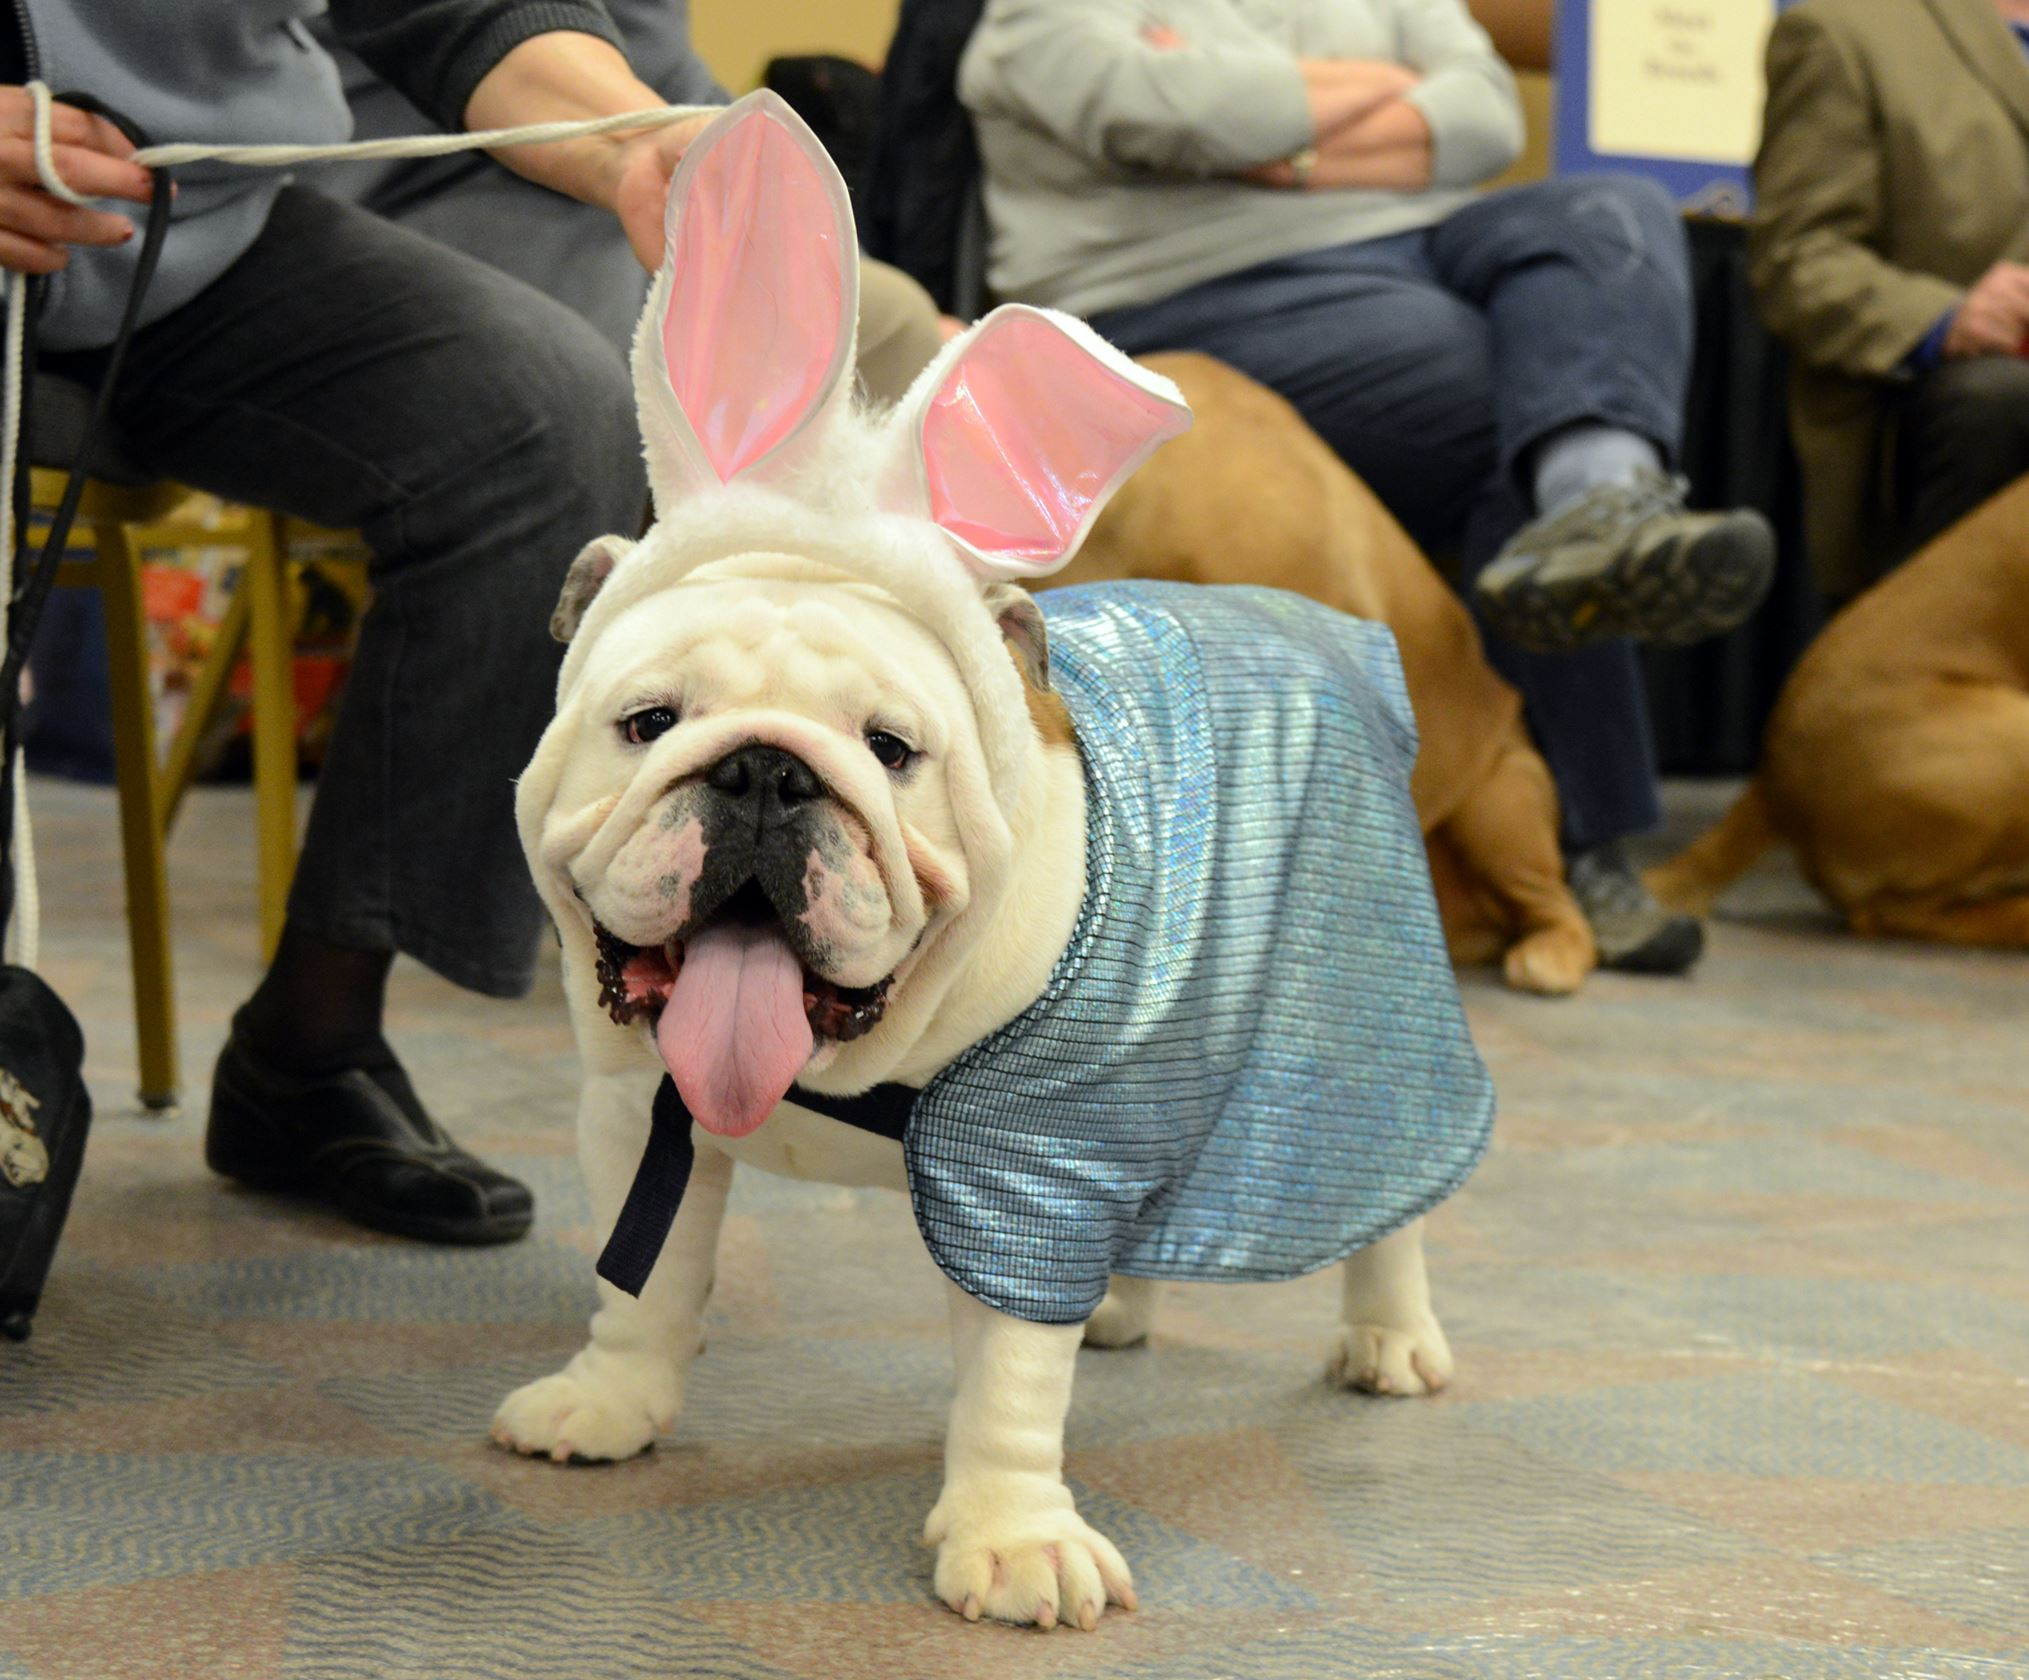 201445RARlocaldog1-9 Zorro, an 18-month old English Bulldog, wears her bunny ears as she takes a break from the show ring during the Western Pennsylvania Kennel Association dog show at the Monroeville Convention Center.